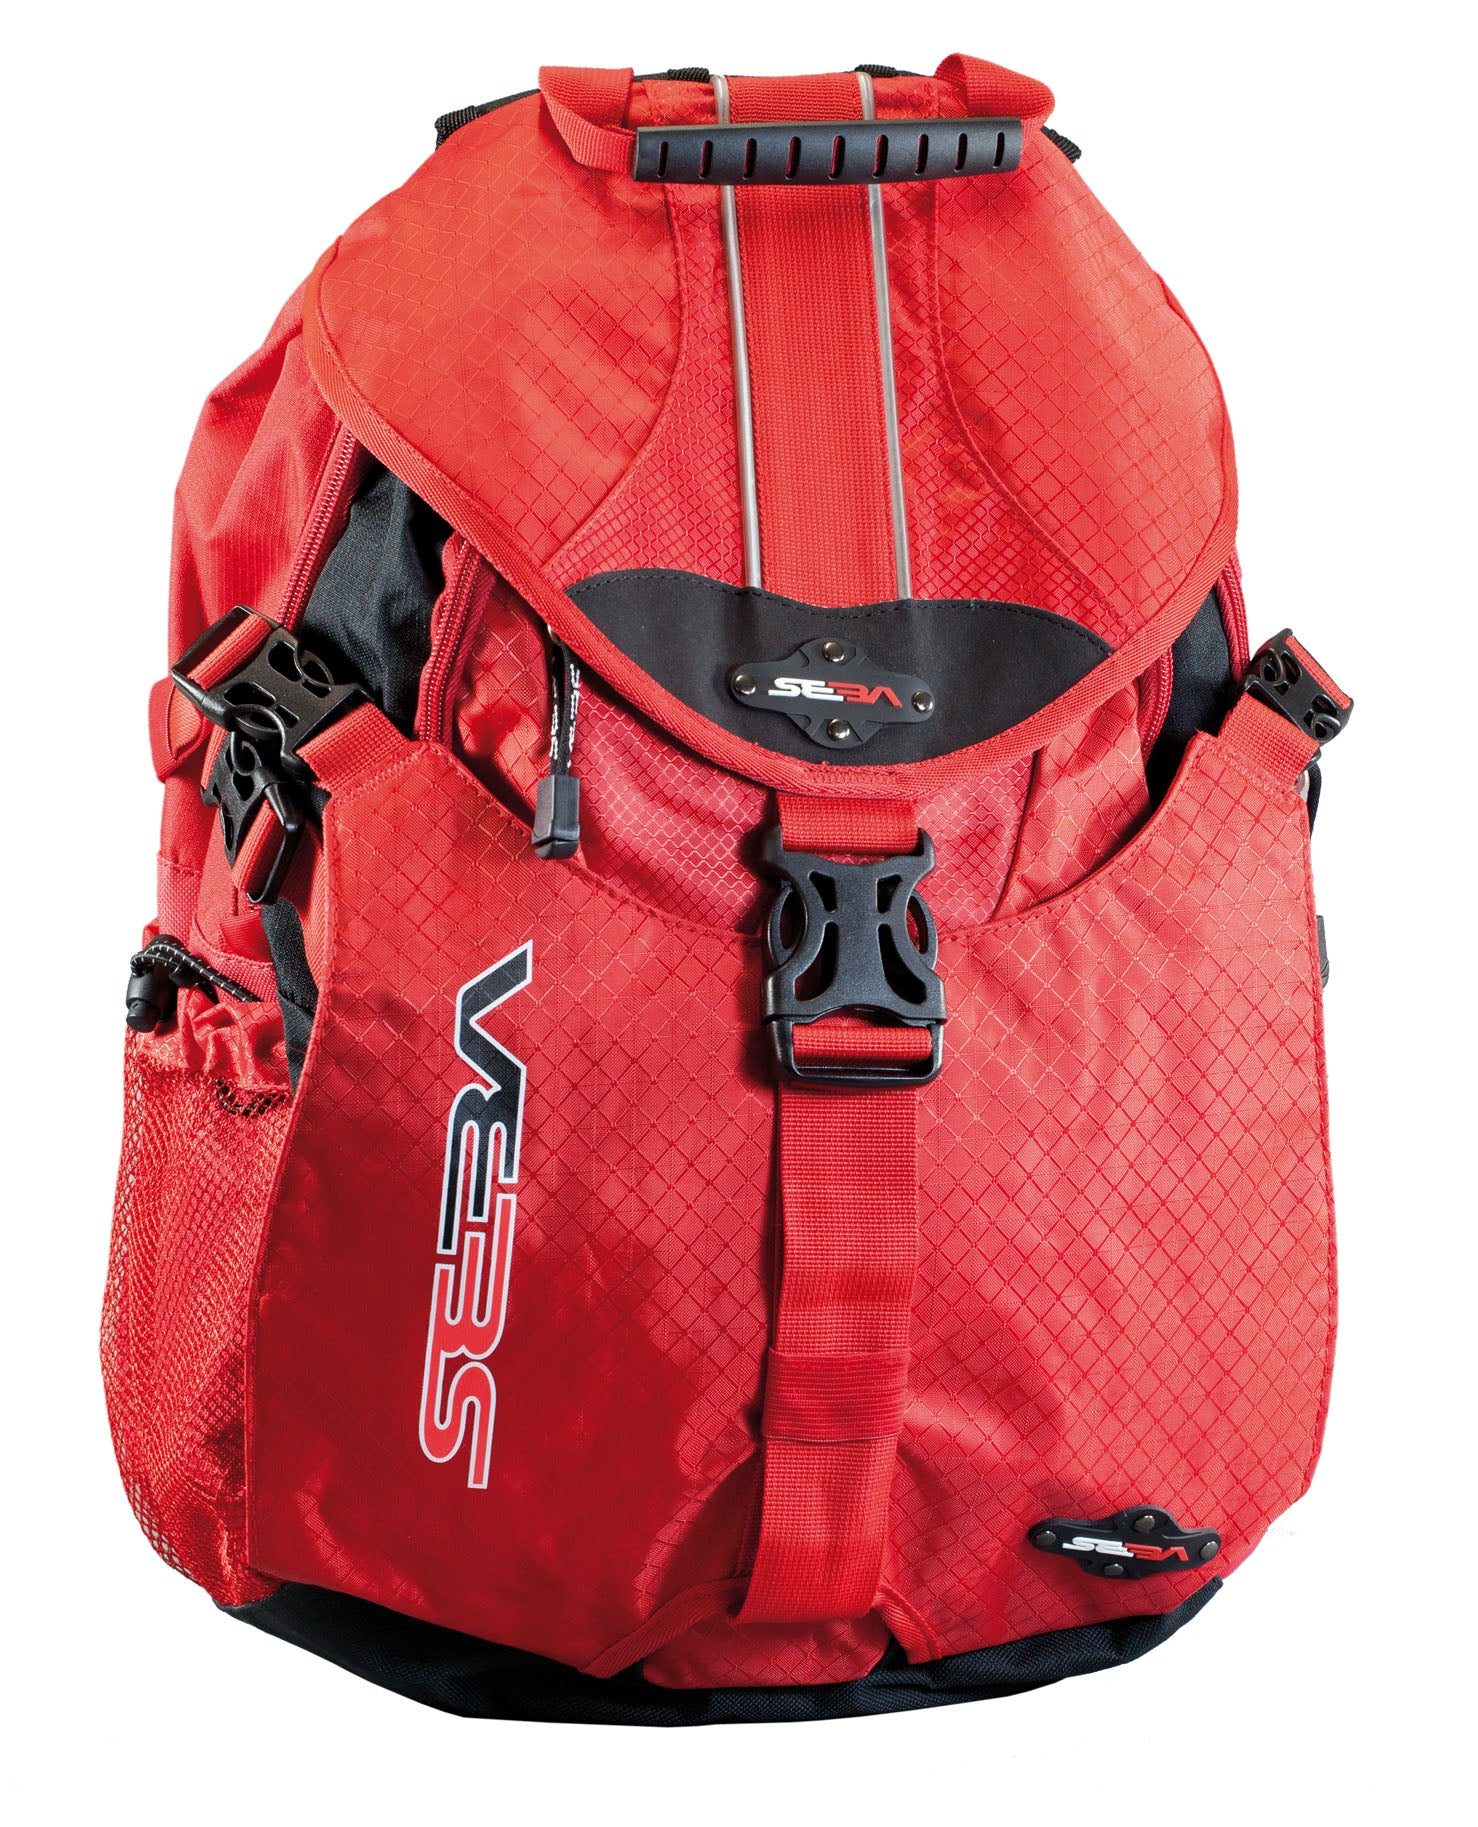 BACKPACK SMALL RED.jpg